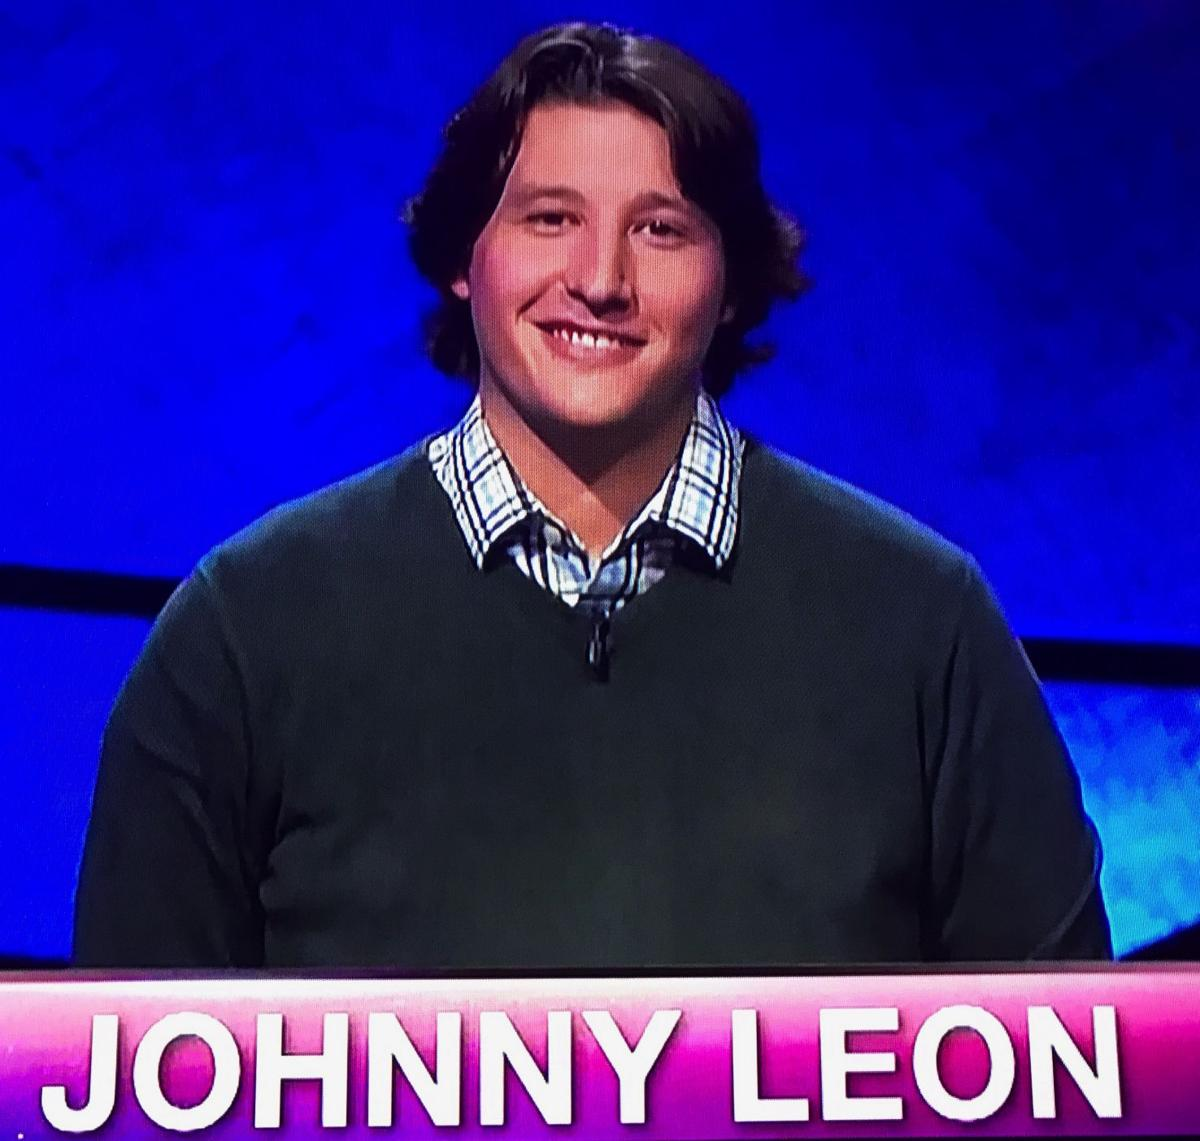 What is a bulldog? 'Jeopardy' features two UGA alumni in one show